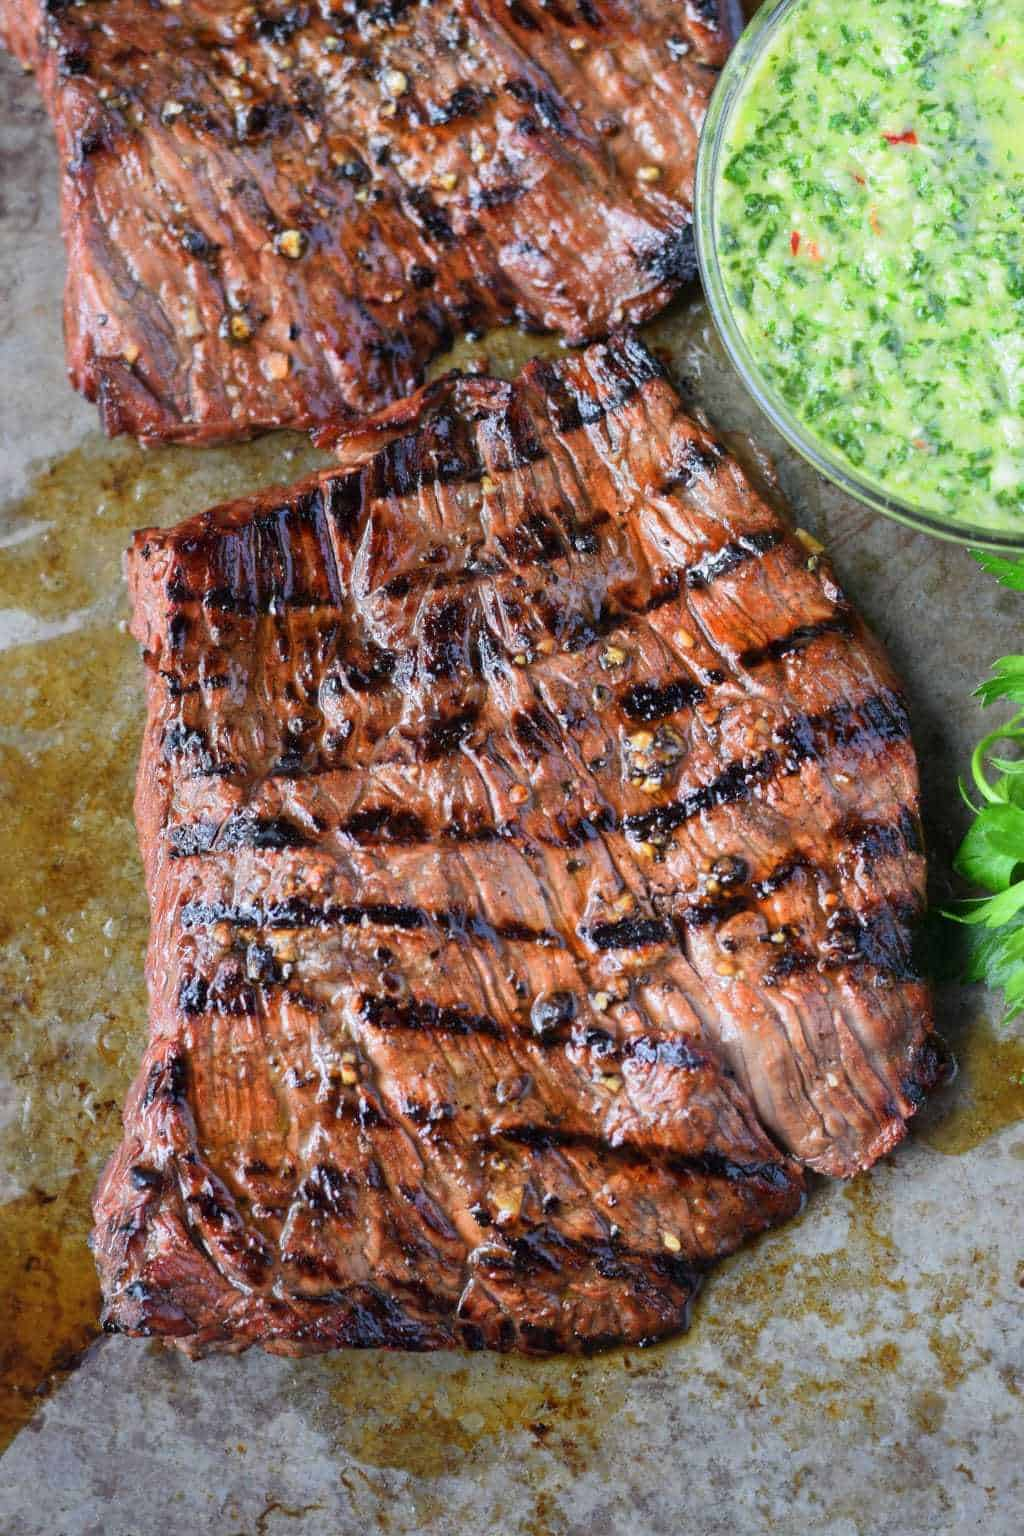 Grilled skirt steak and a side of chimichurri